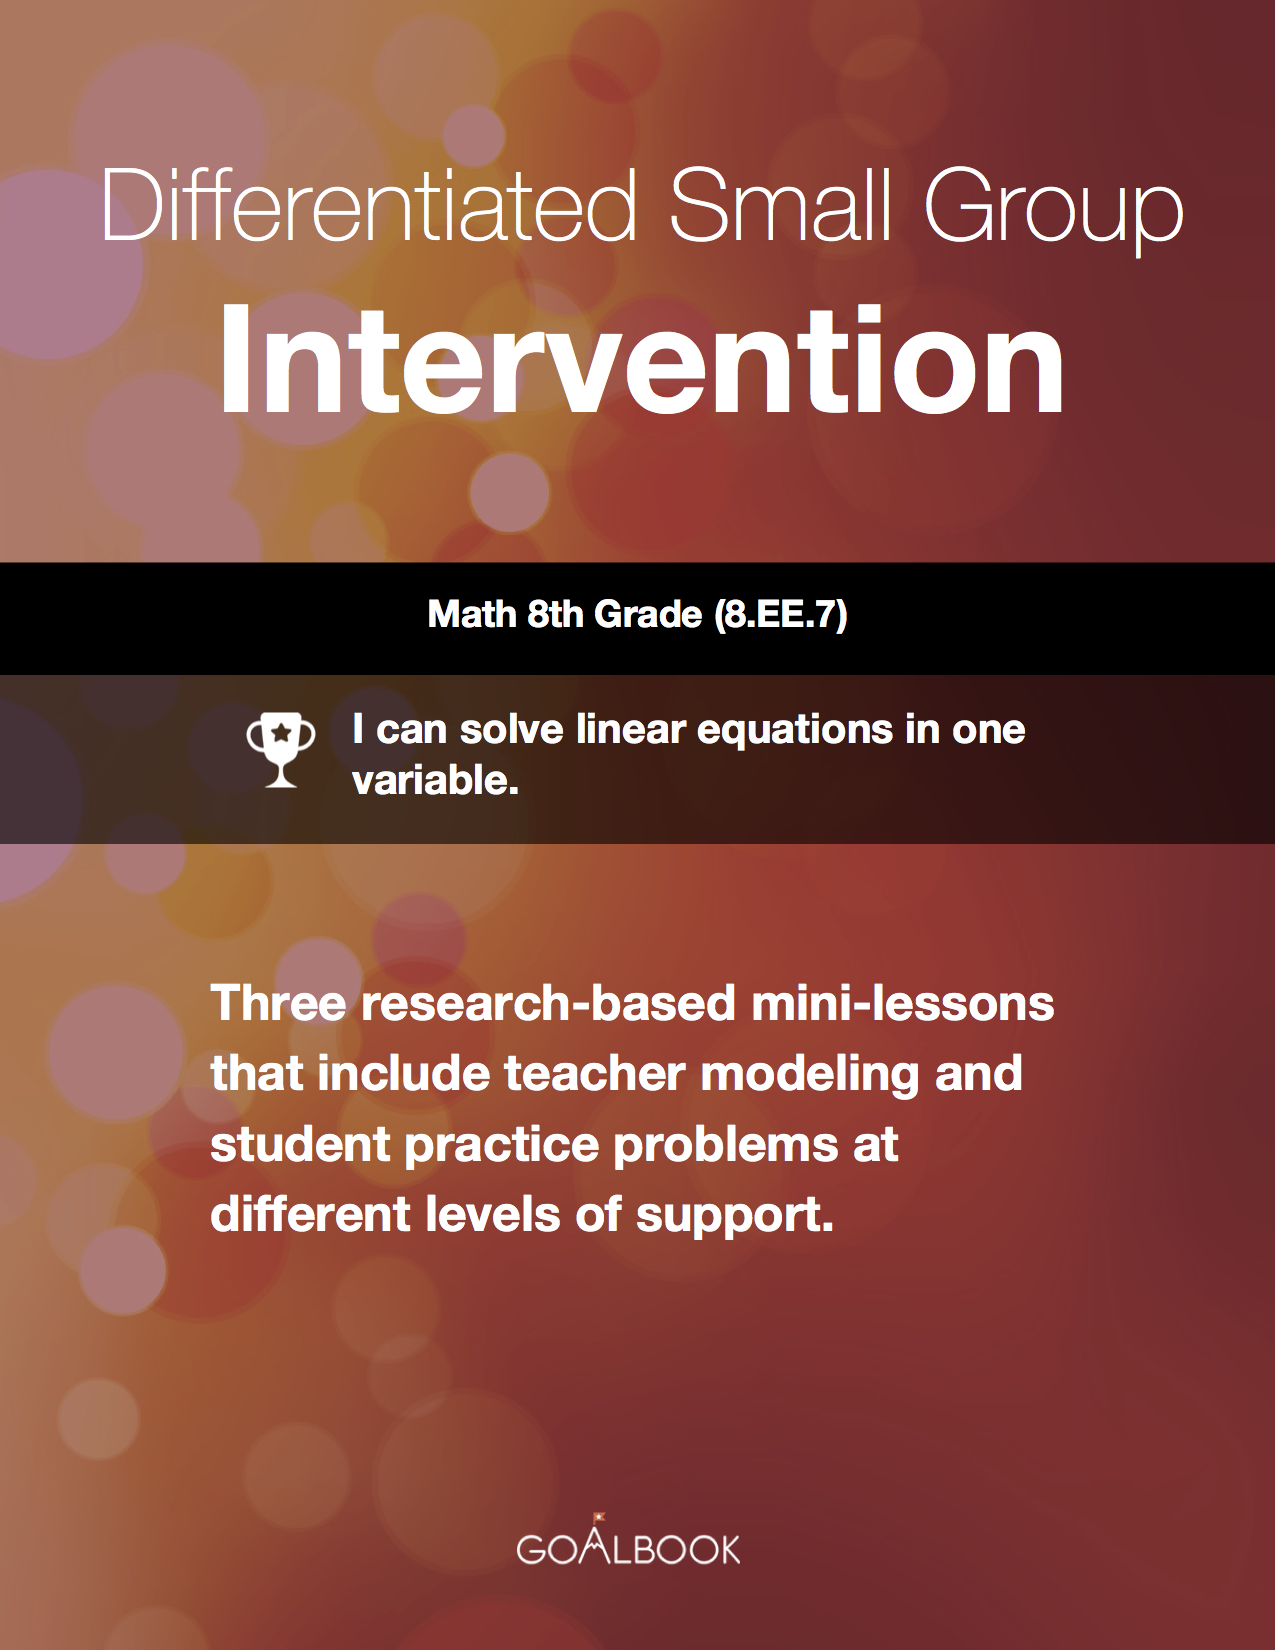 Differentiated Small Group Intervention: Solving One-Variable Linear Equations